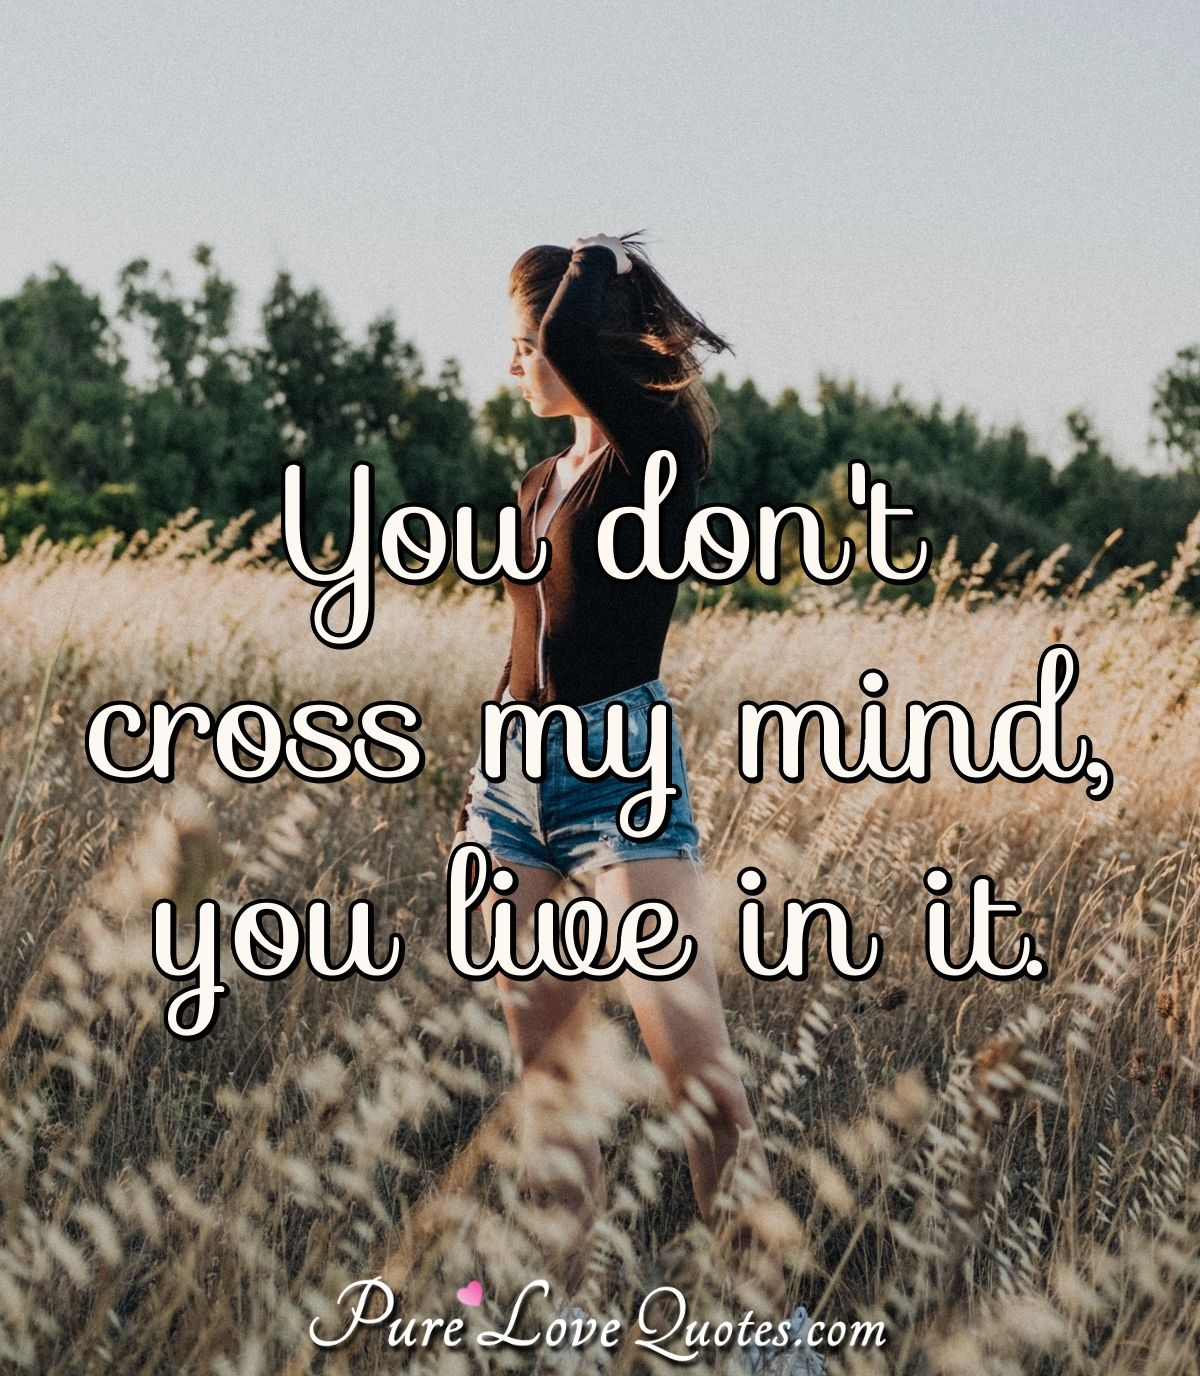 You don't cross my mind, you live in it. - Anonymous